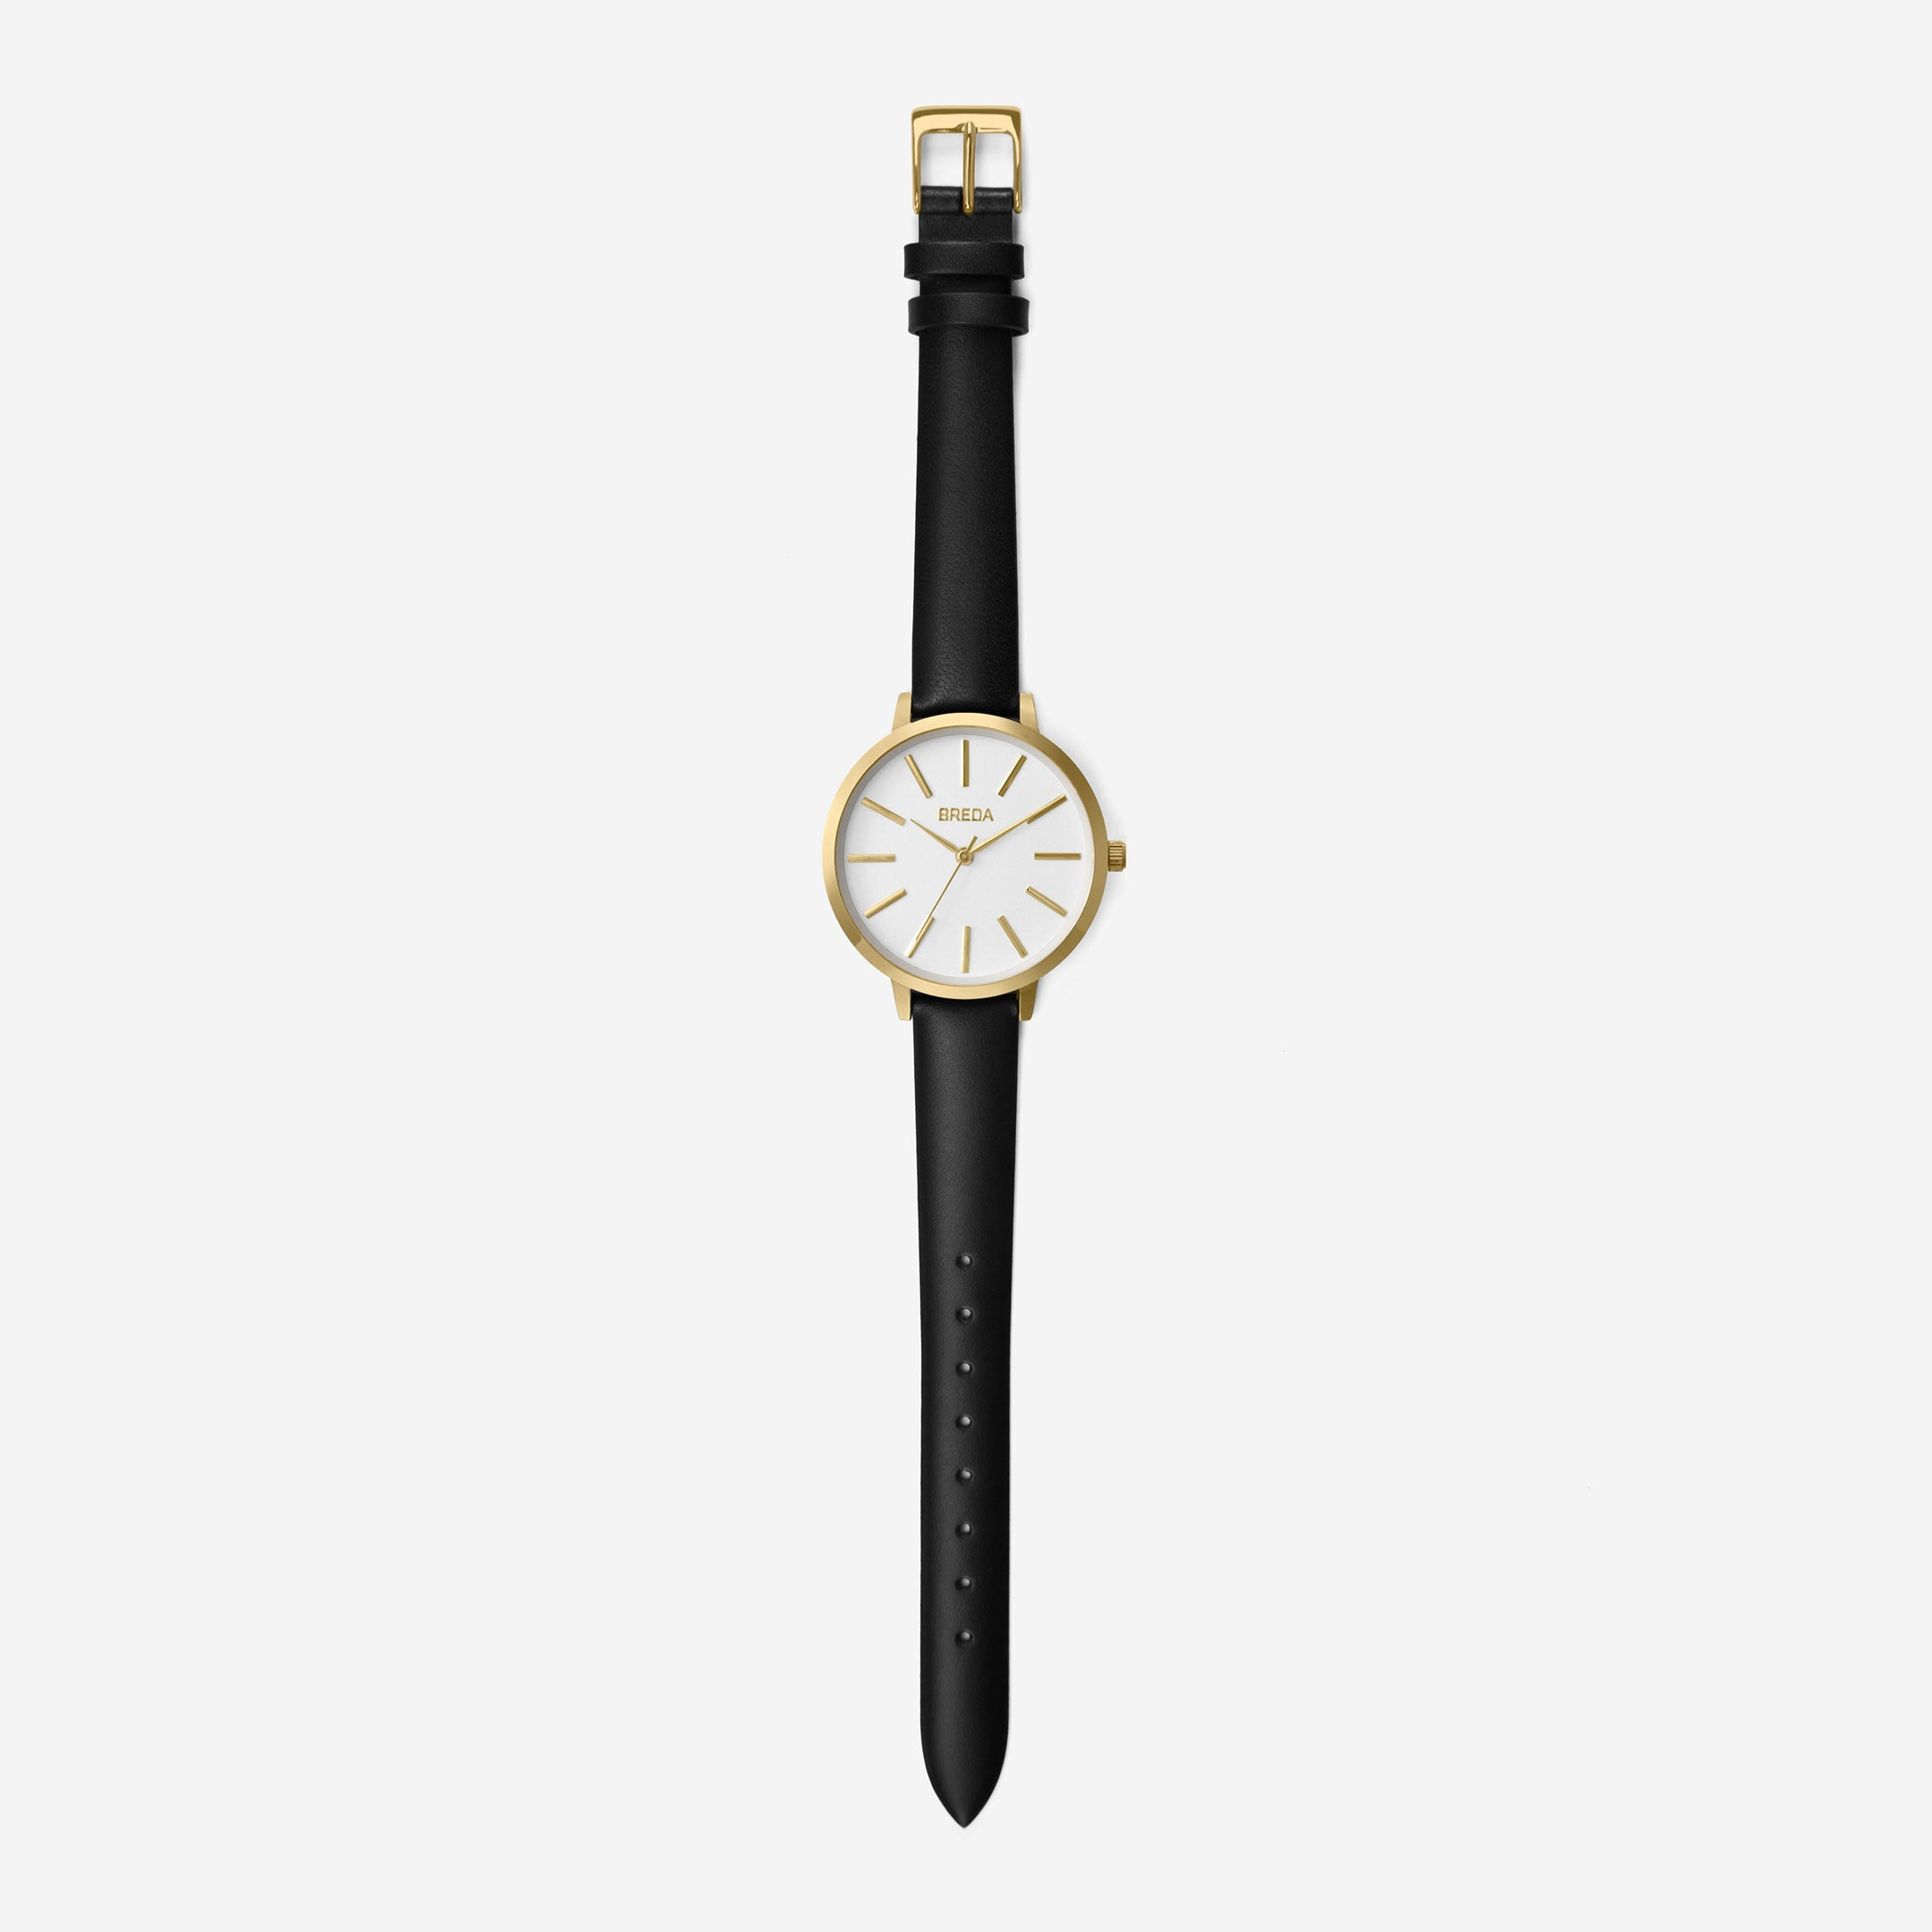 //cdn.shopify.com/s/files/1/0879/6650/products/breda-joule-1722a-gold-black-watch-long_1024x1024.jpg?v=1522790020